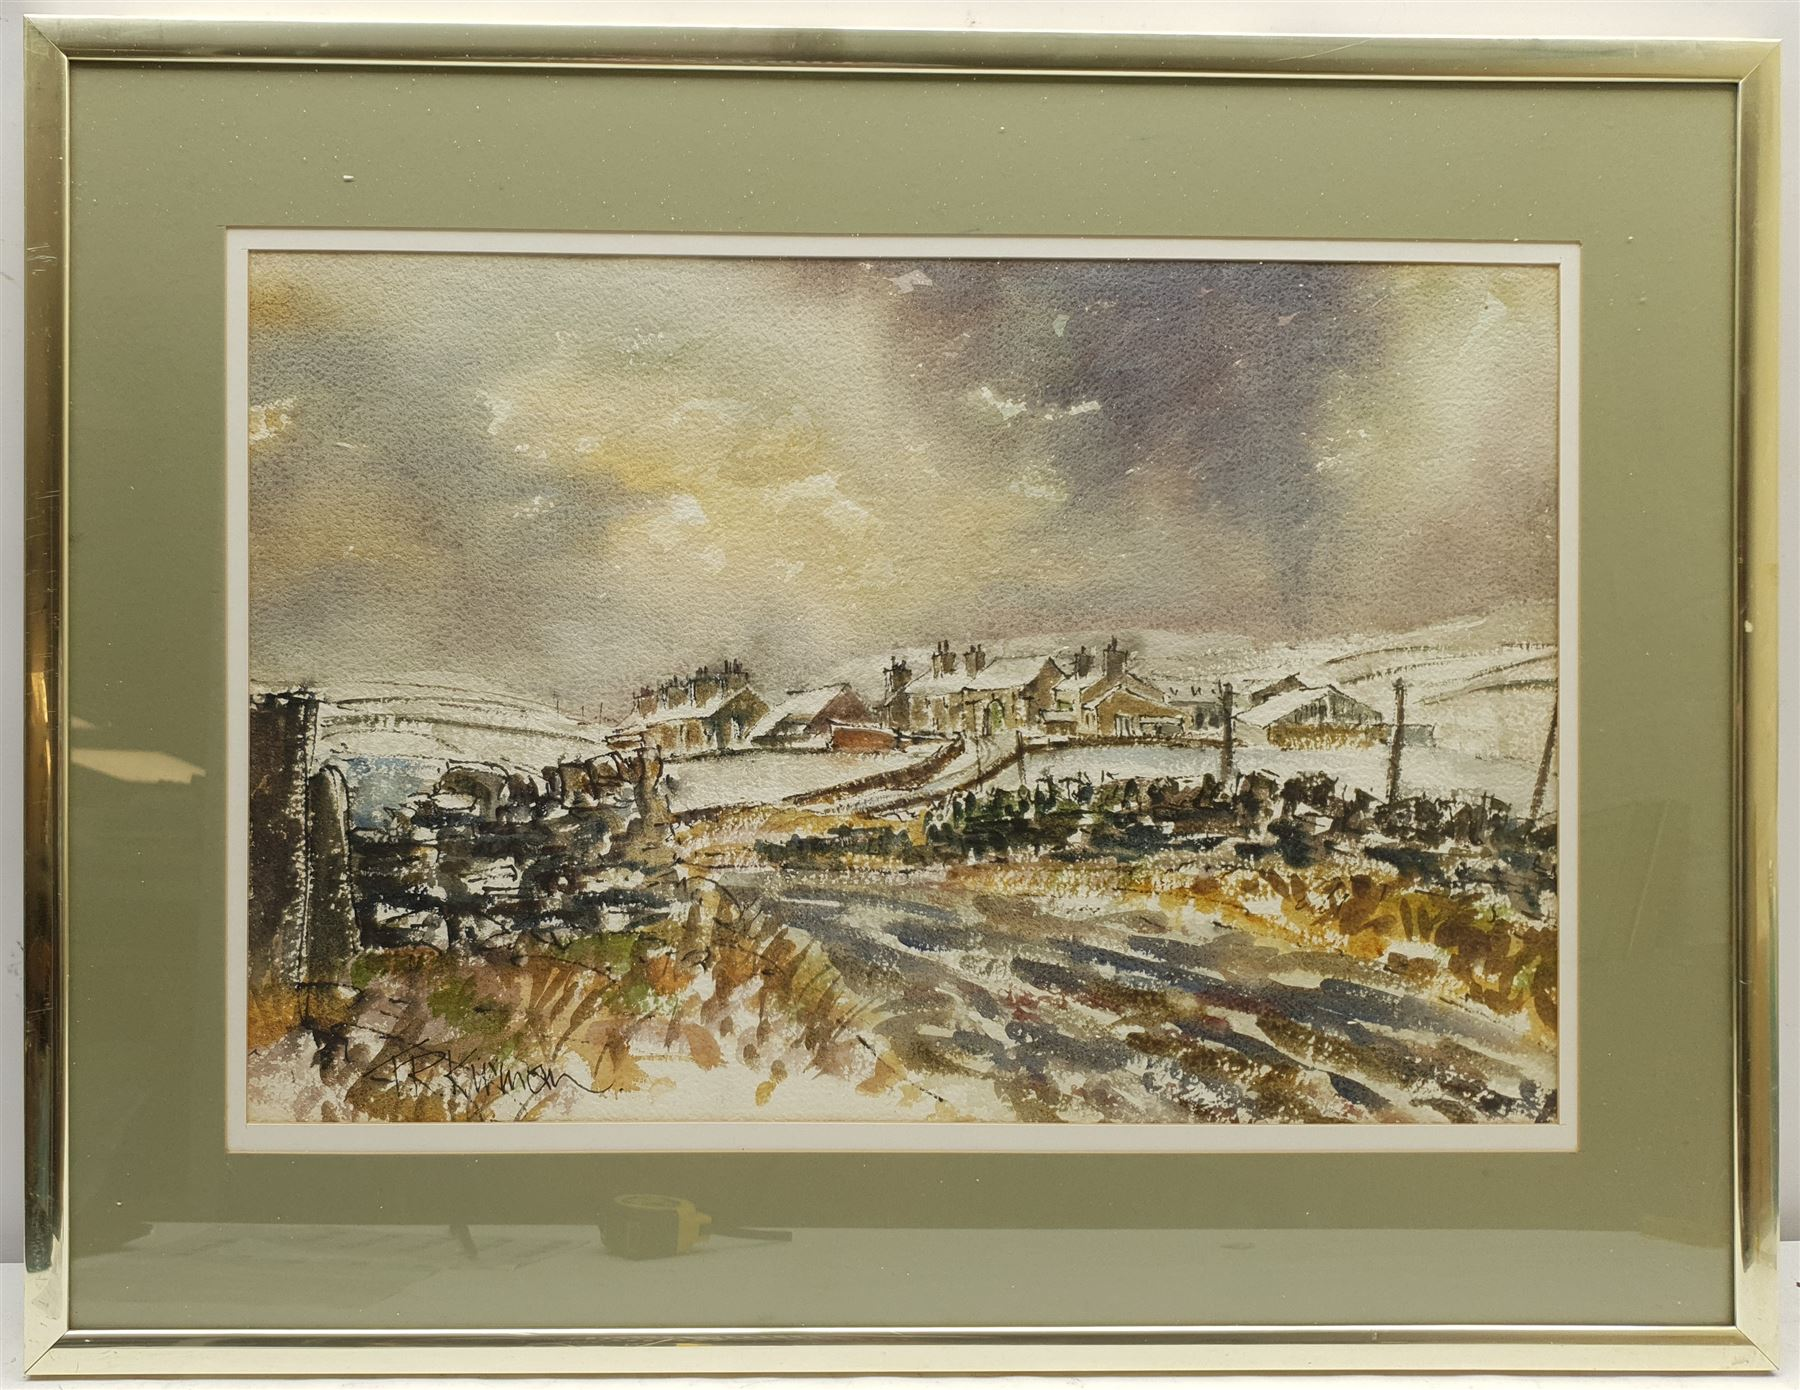 Terry Kirman (British 1939-1997): Yorkshire Dales Village in Winter - Image 2 of 2